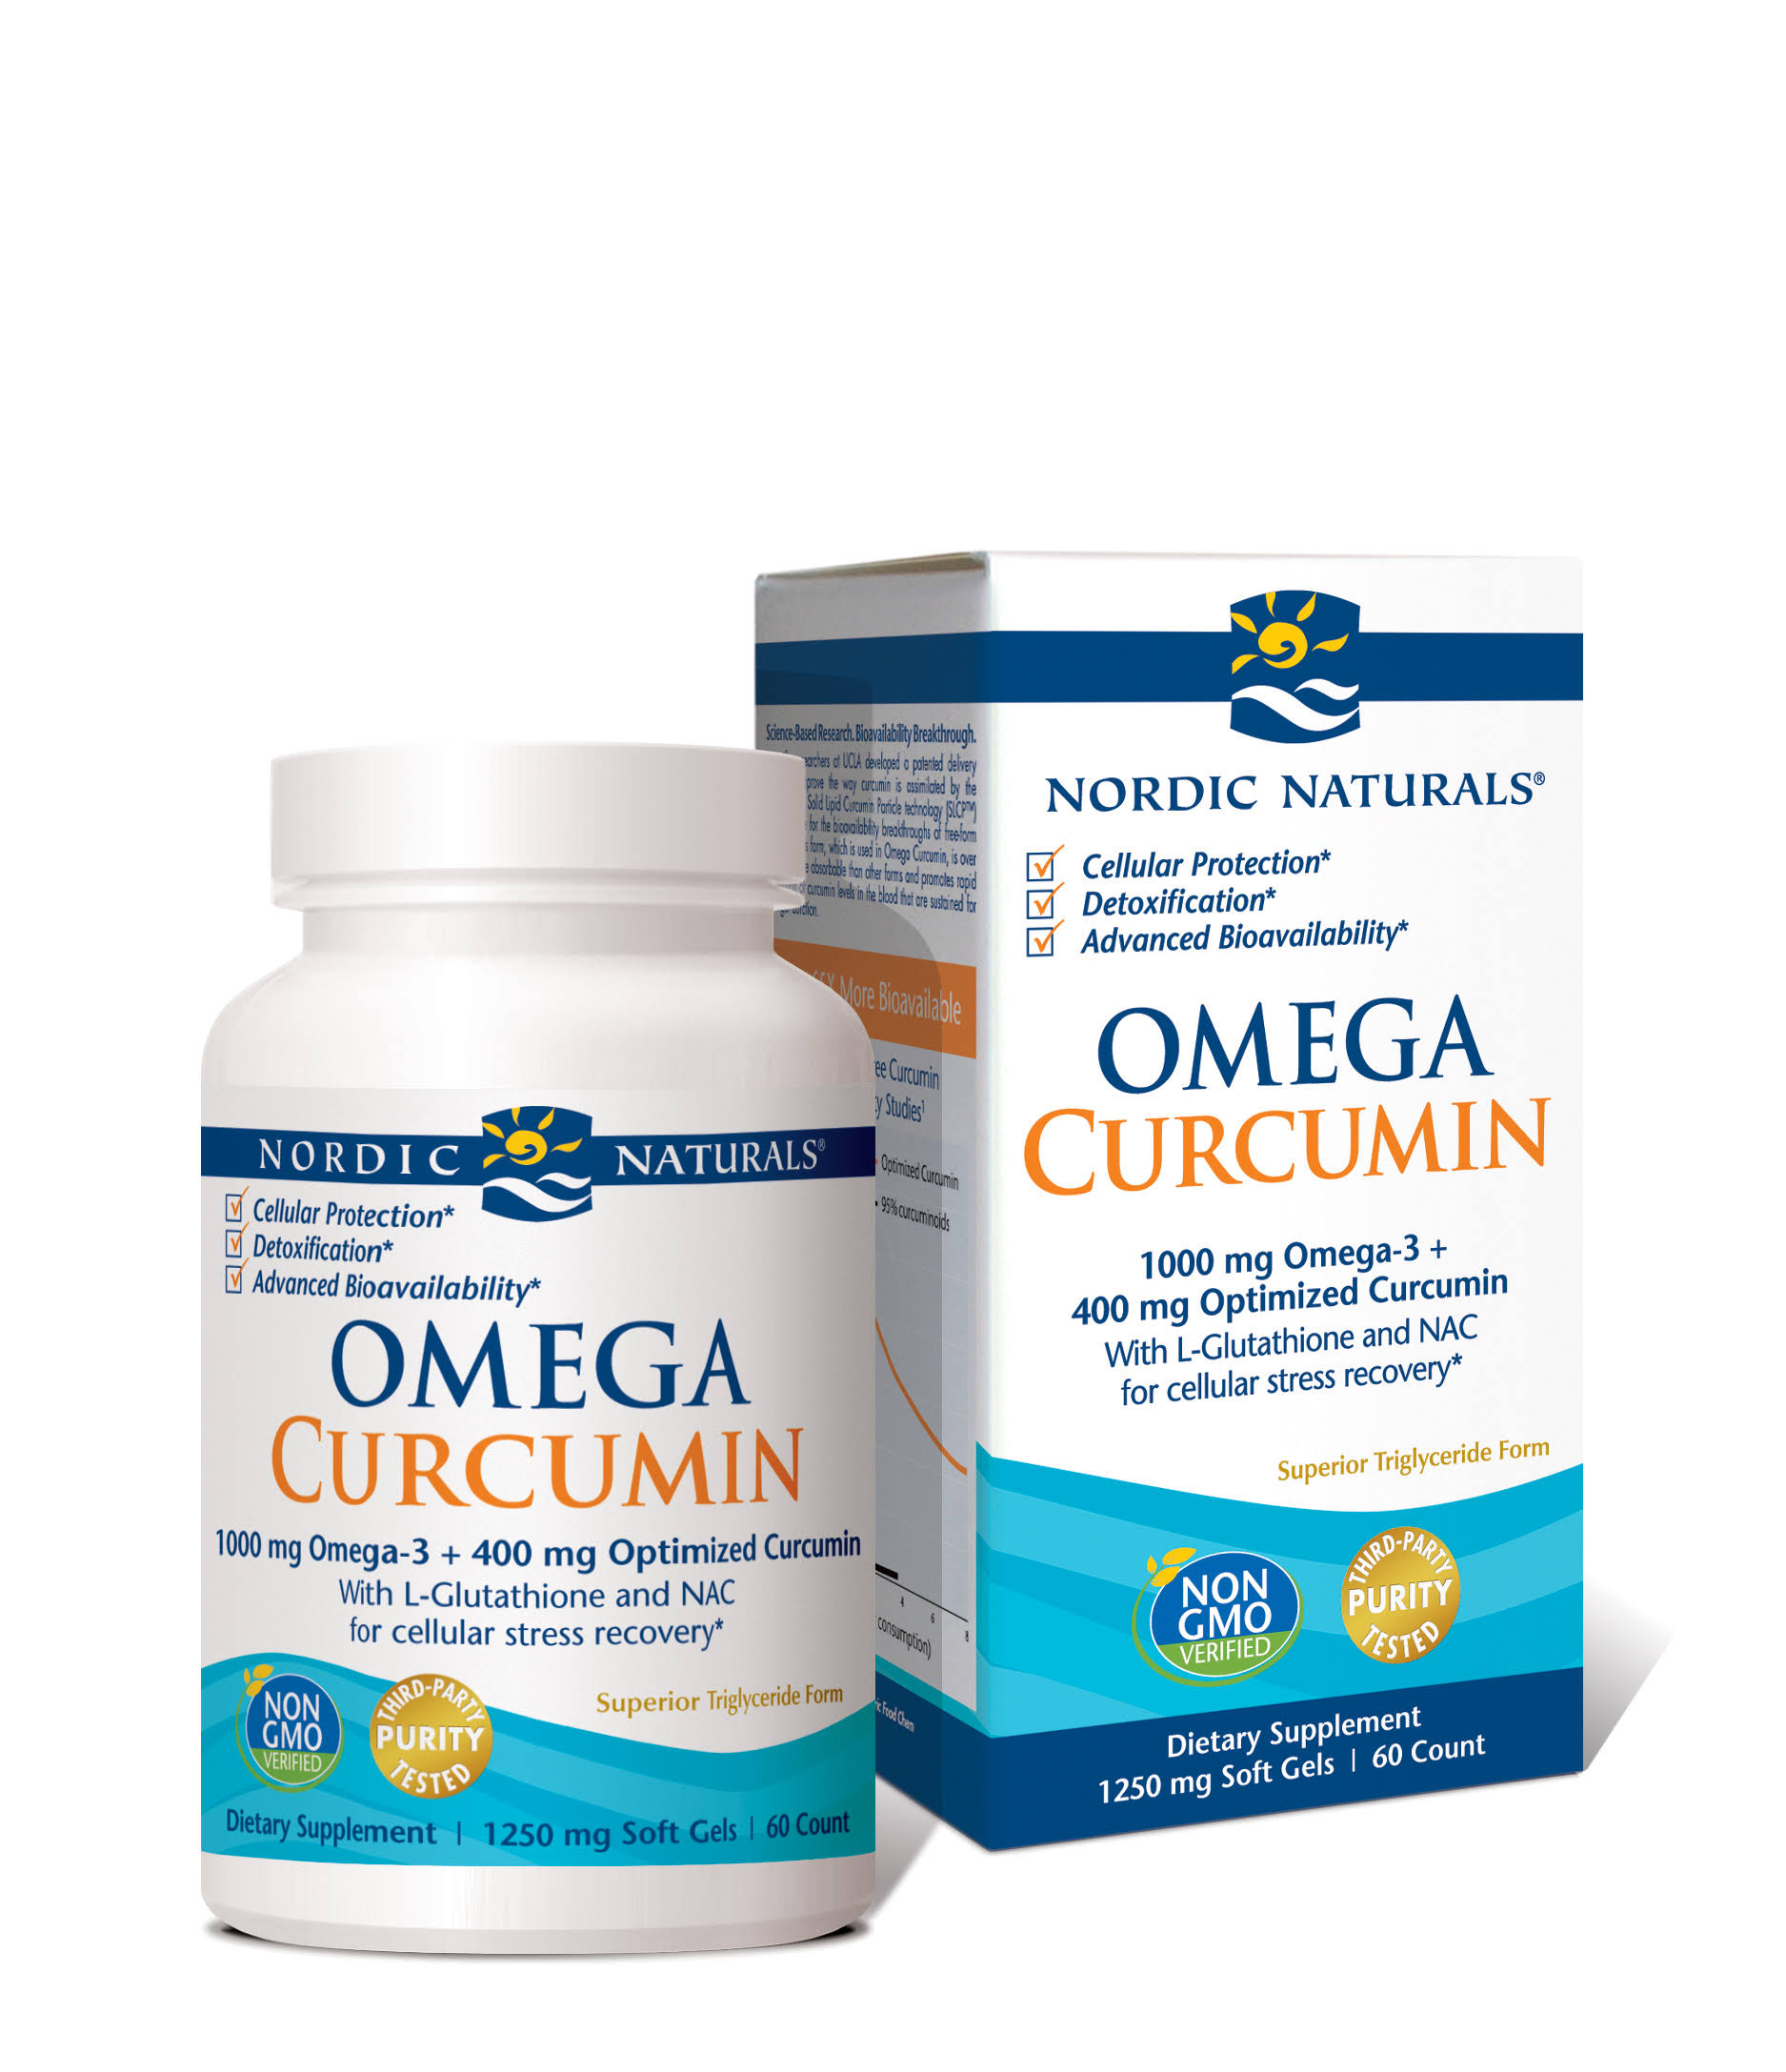 Nordic Naturals Omega Curcumin Dietary Supplement - 1250mg, 60ct